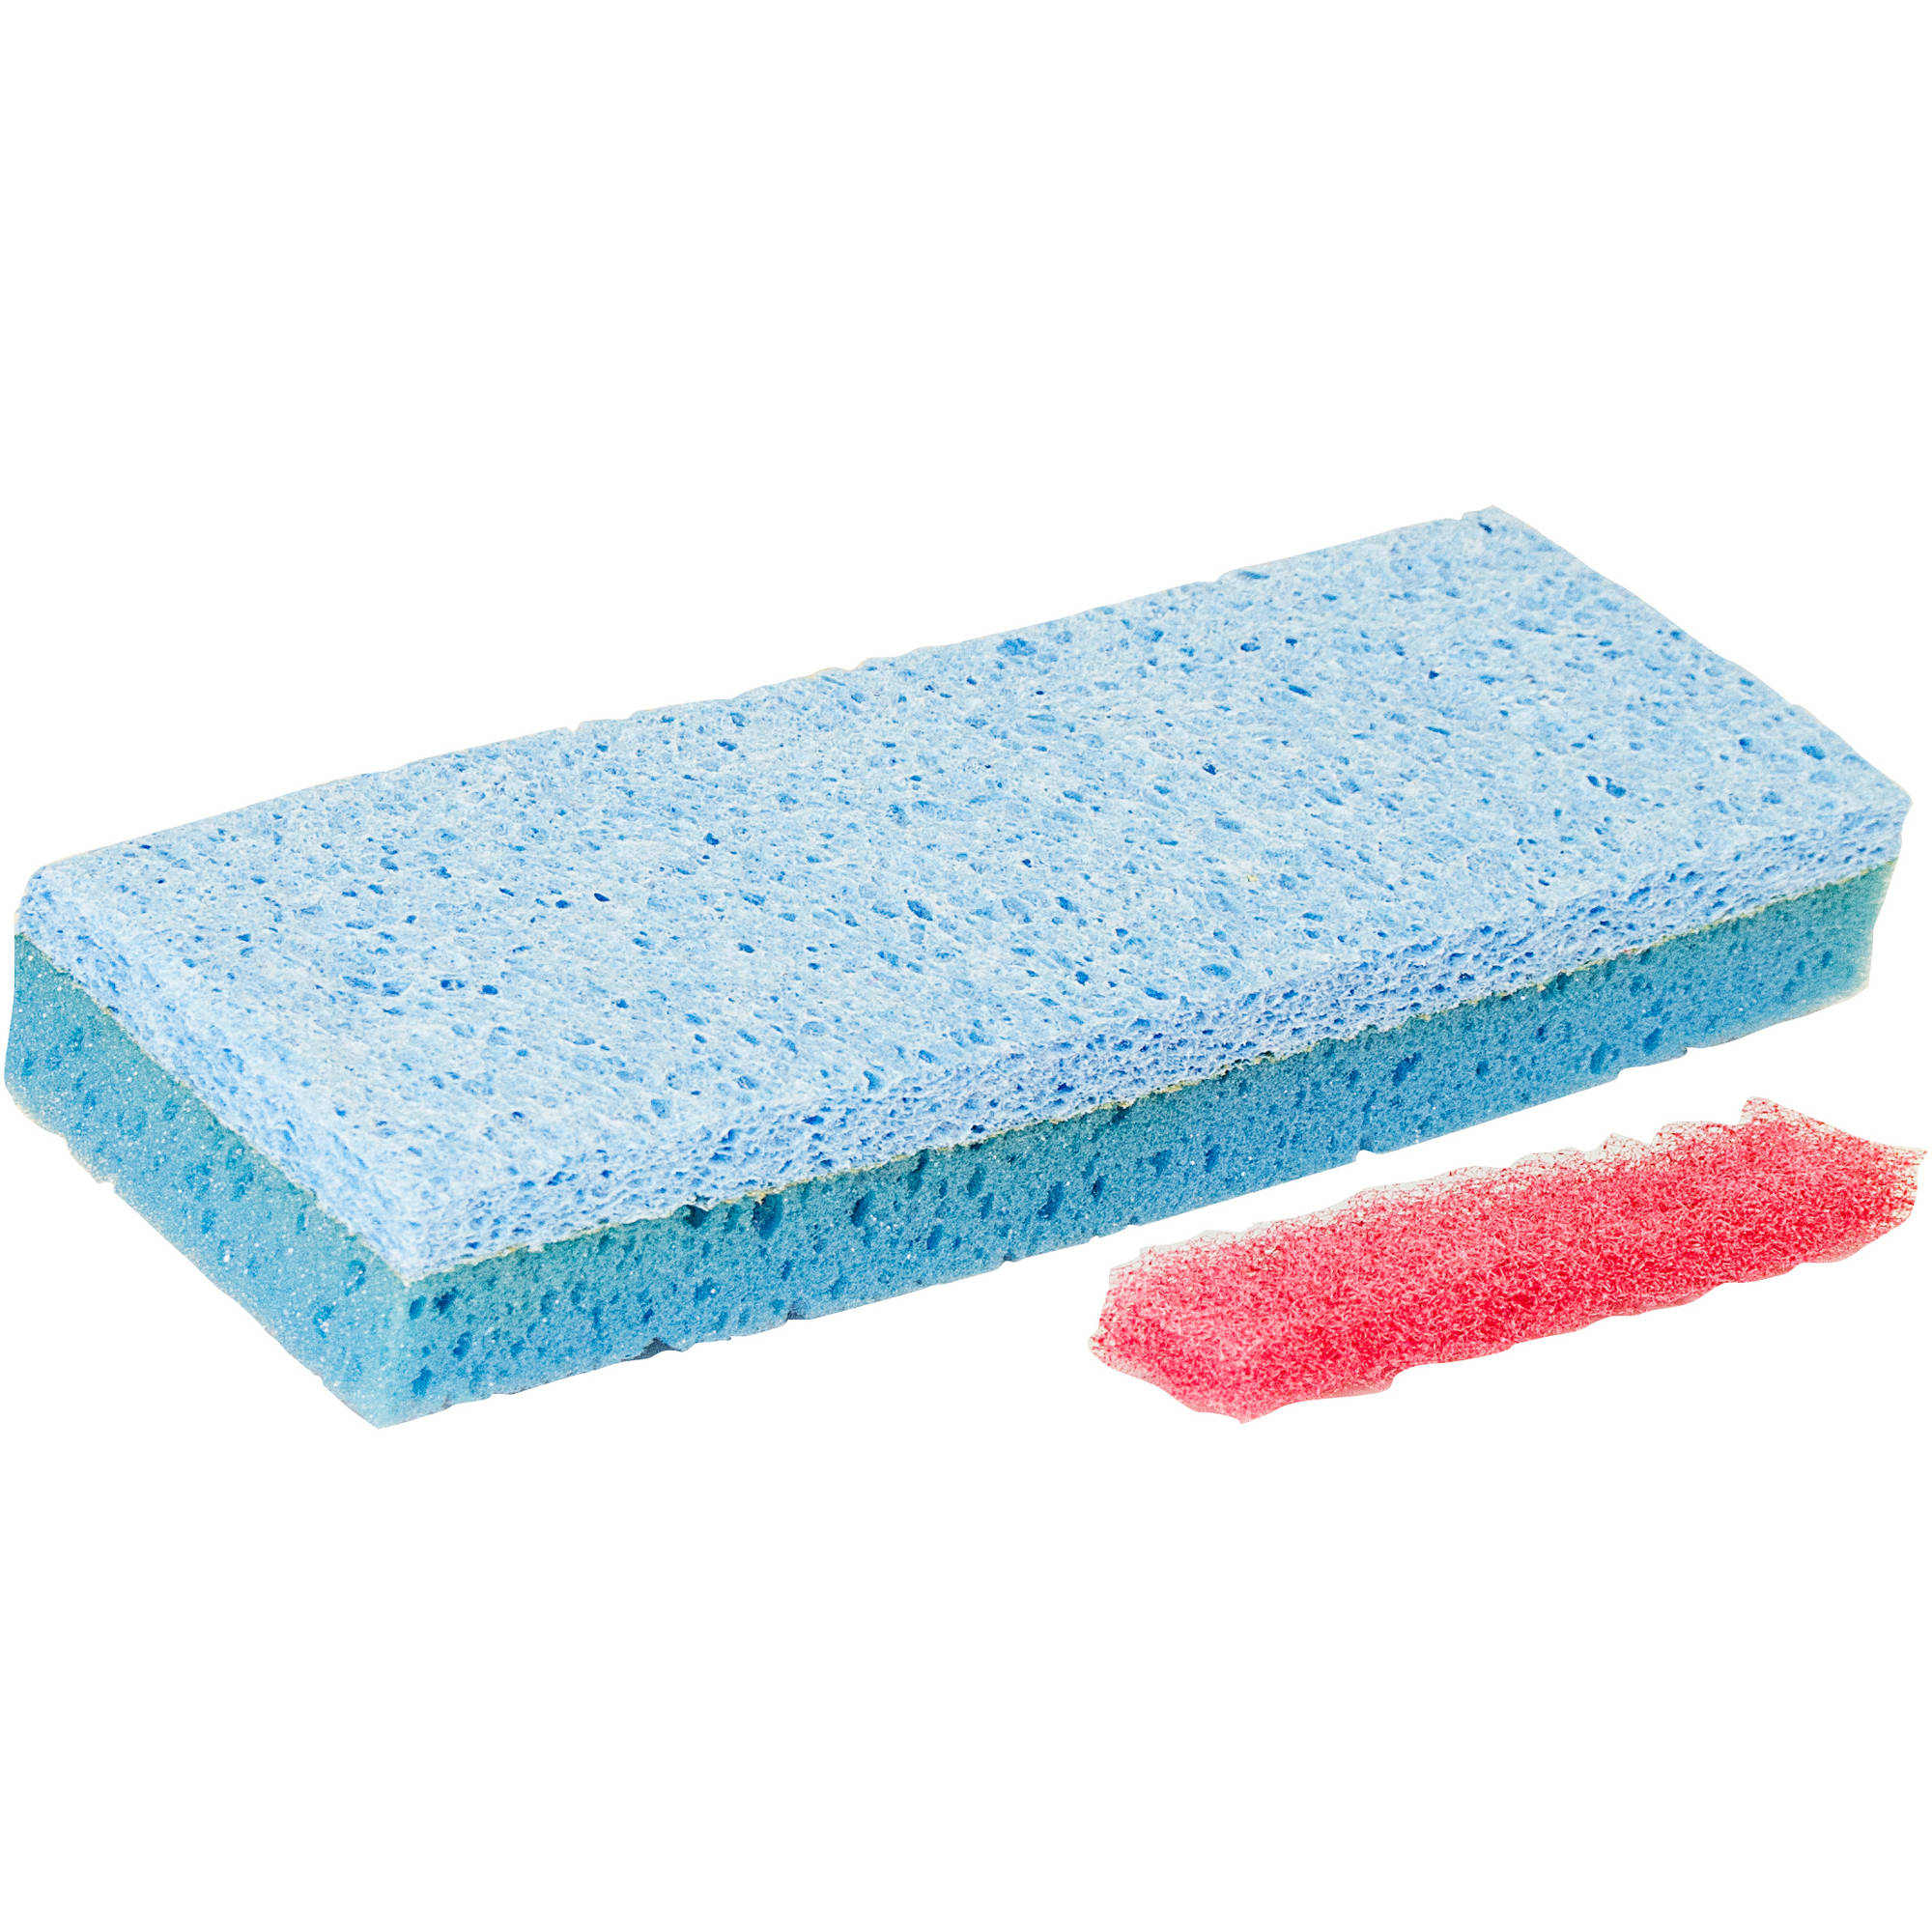 Quickie Type A Super Squeeze Sponge Mop Refill